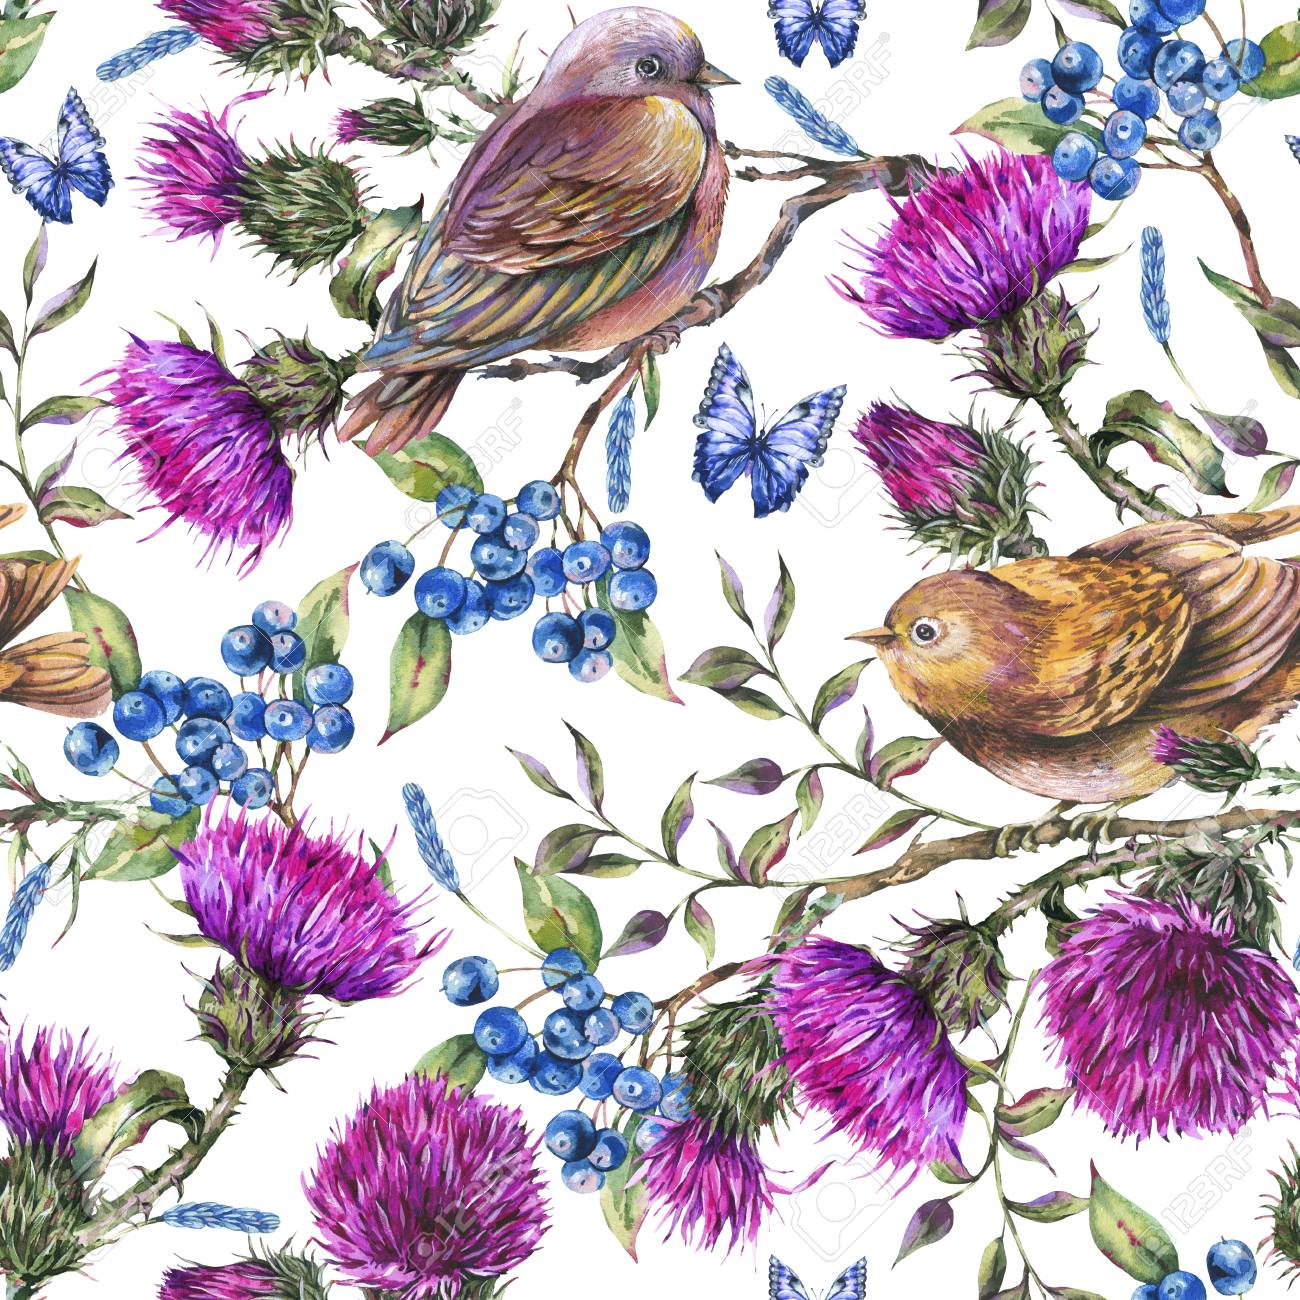 Watercolor seamless pattern with pair of birds, thistle, berries. - 123162386